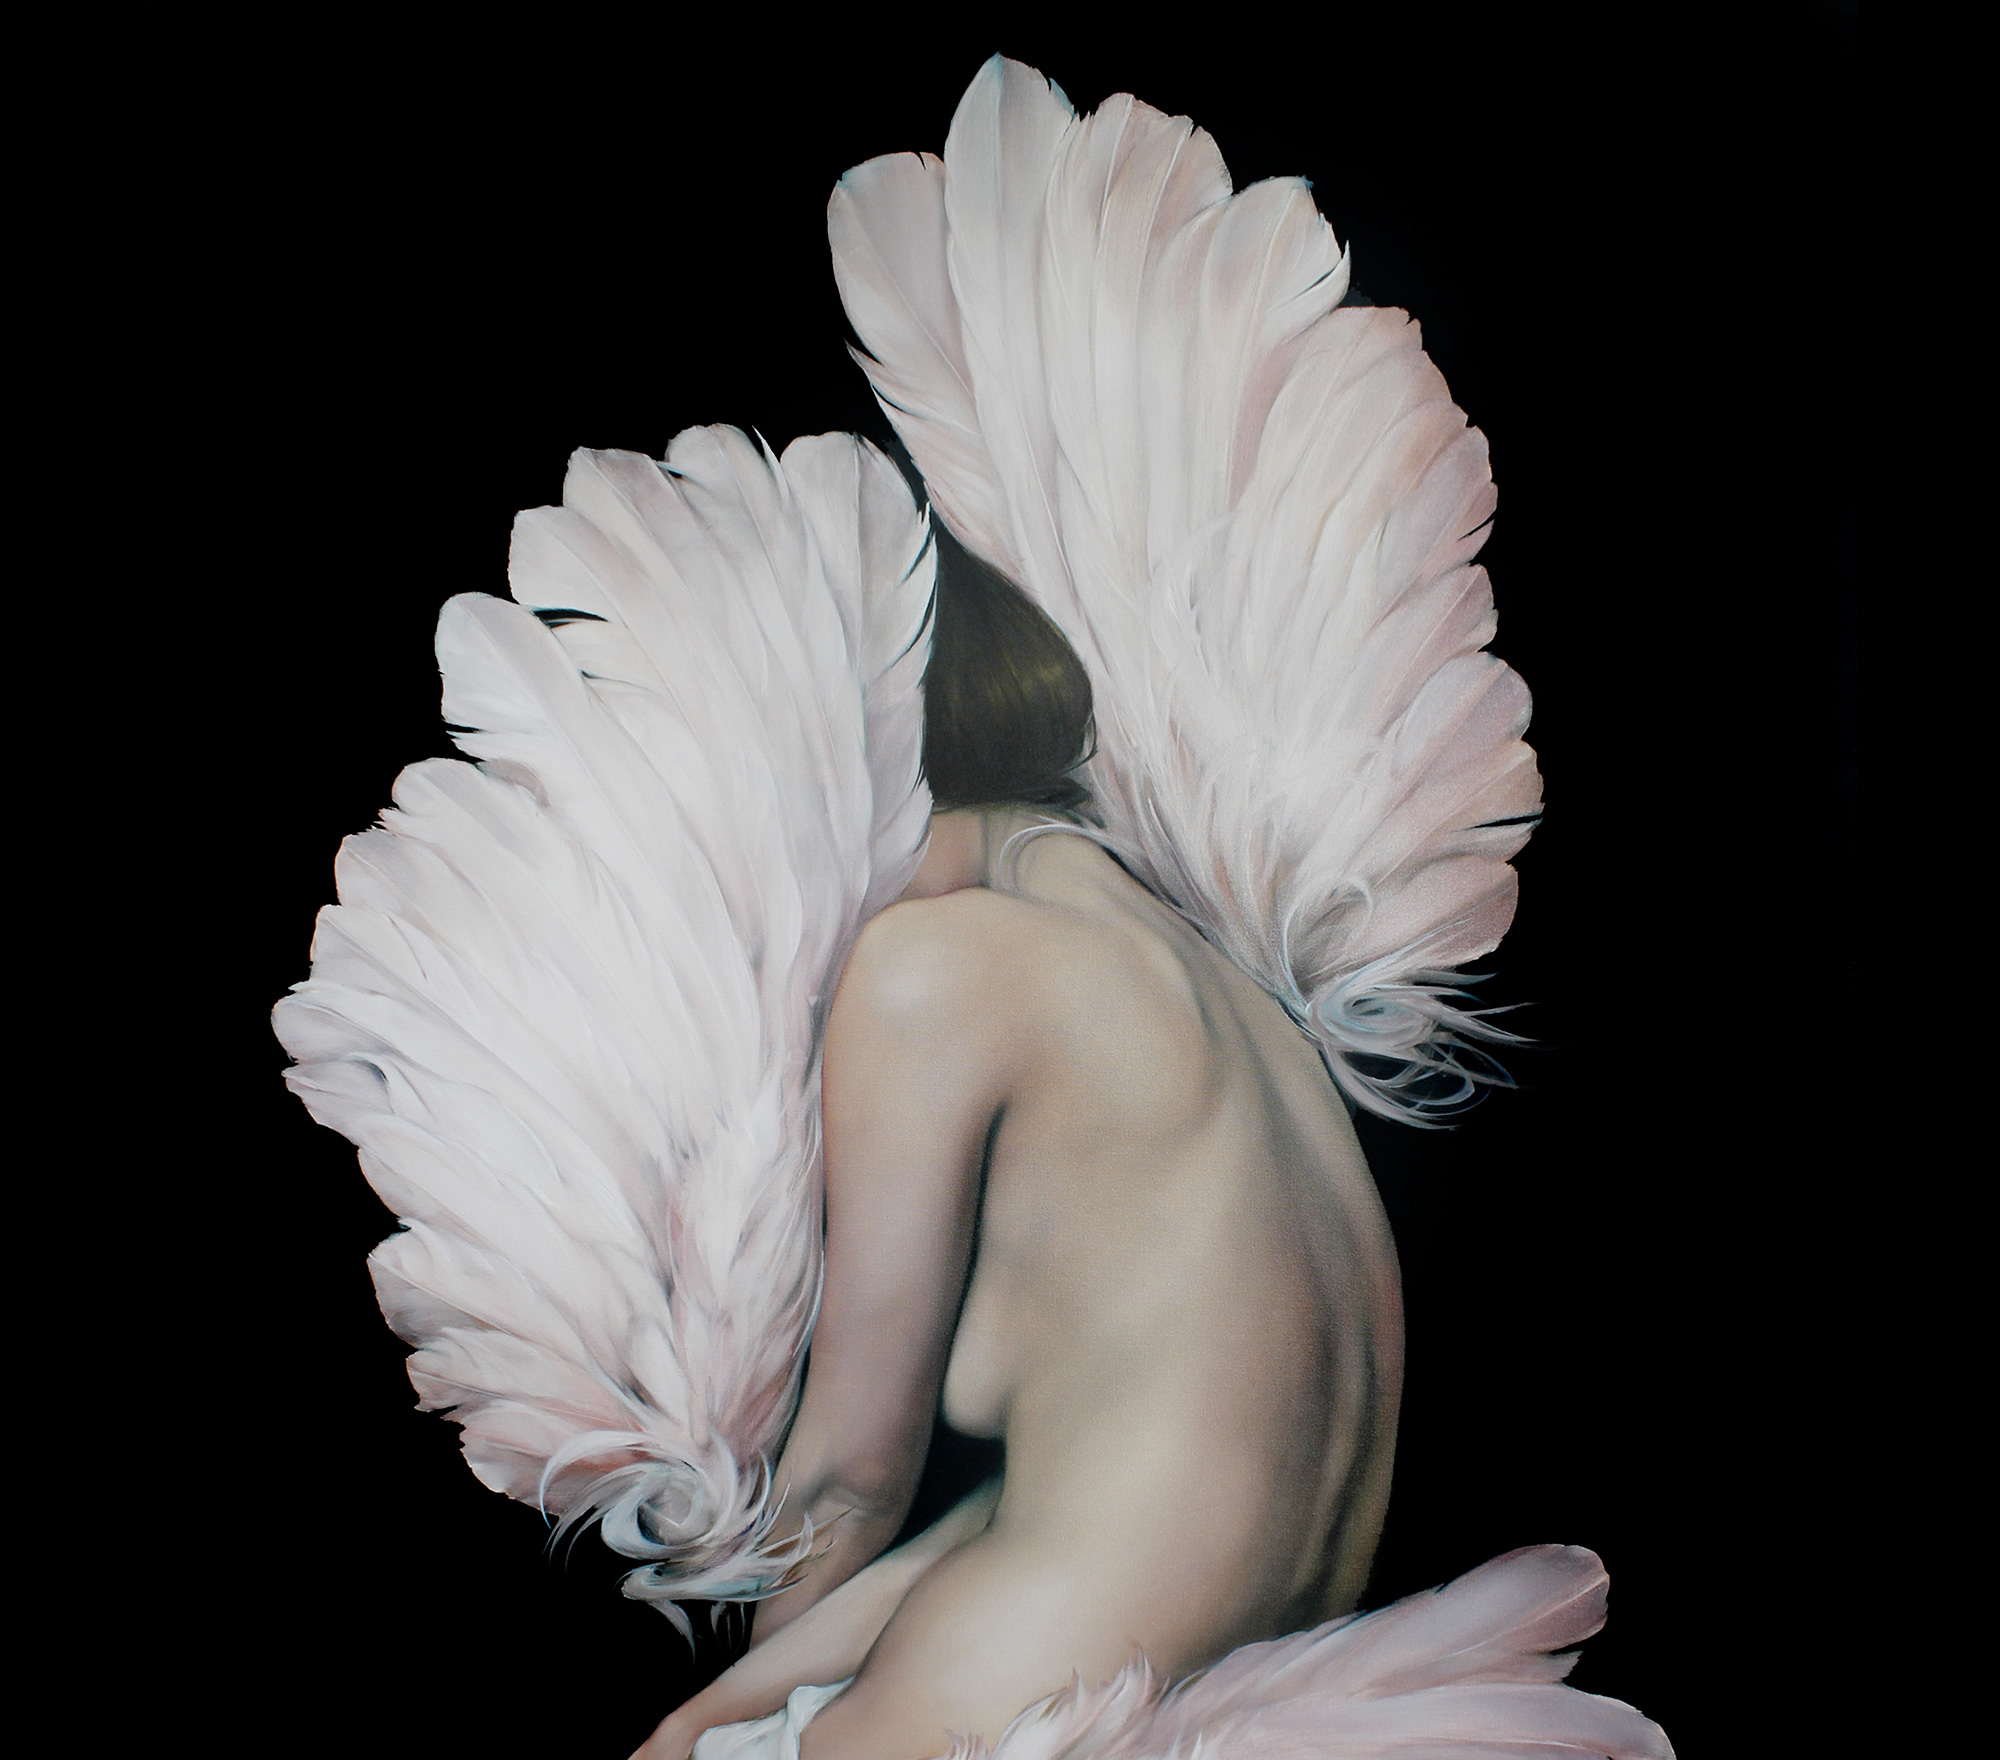 the muse, painting of a woman with feathered wings, by amy judd